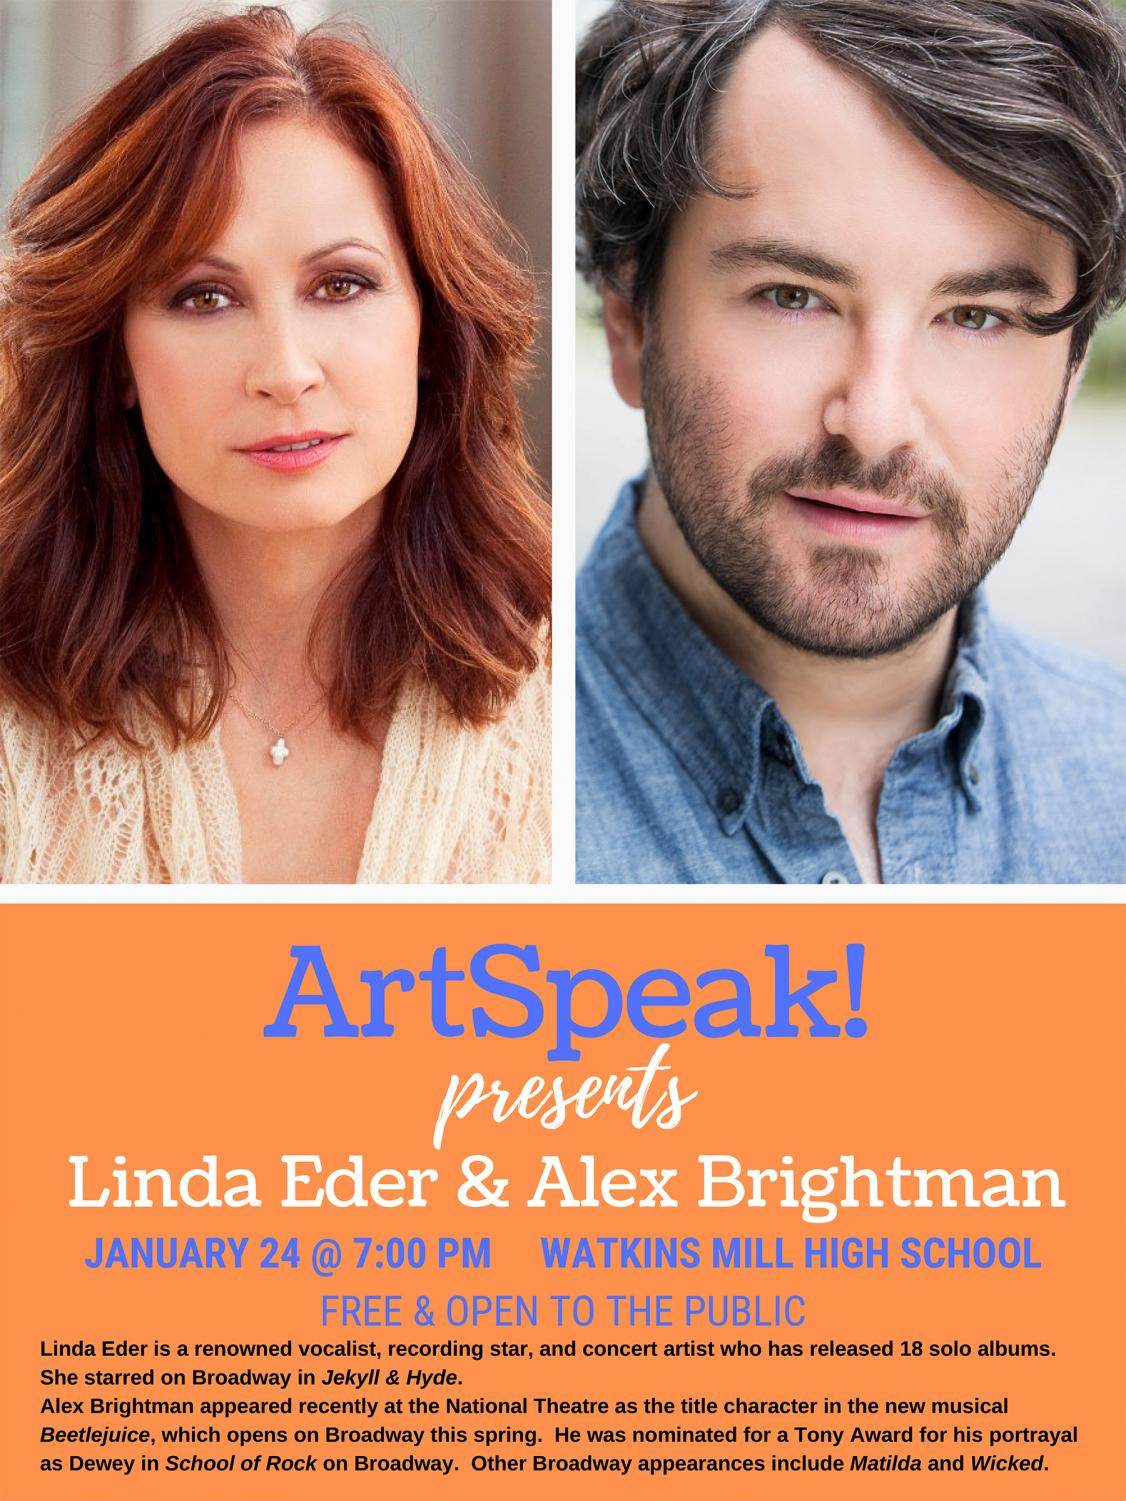 Broadway stars Linda Eder and Alex Brightman will appear on the Watkins Mill High School stage at 7pm tonight as part of the ArtSpeak program.